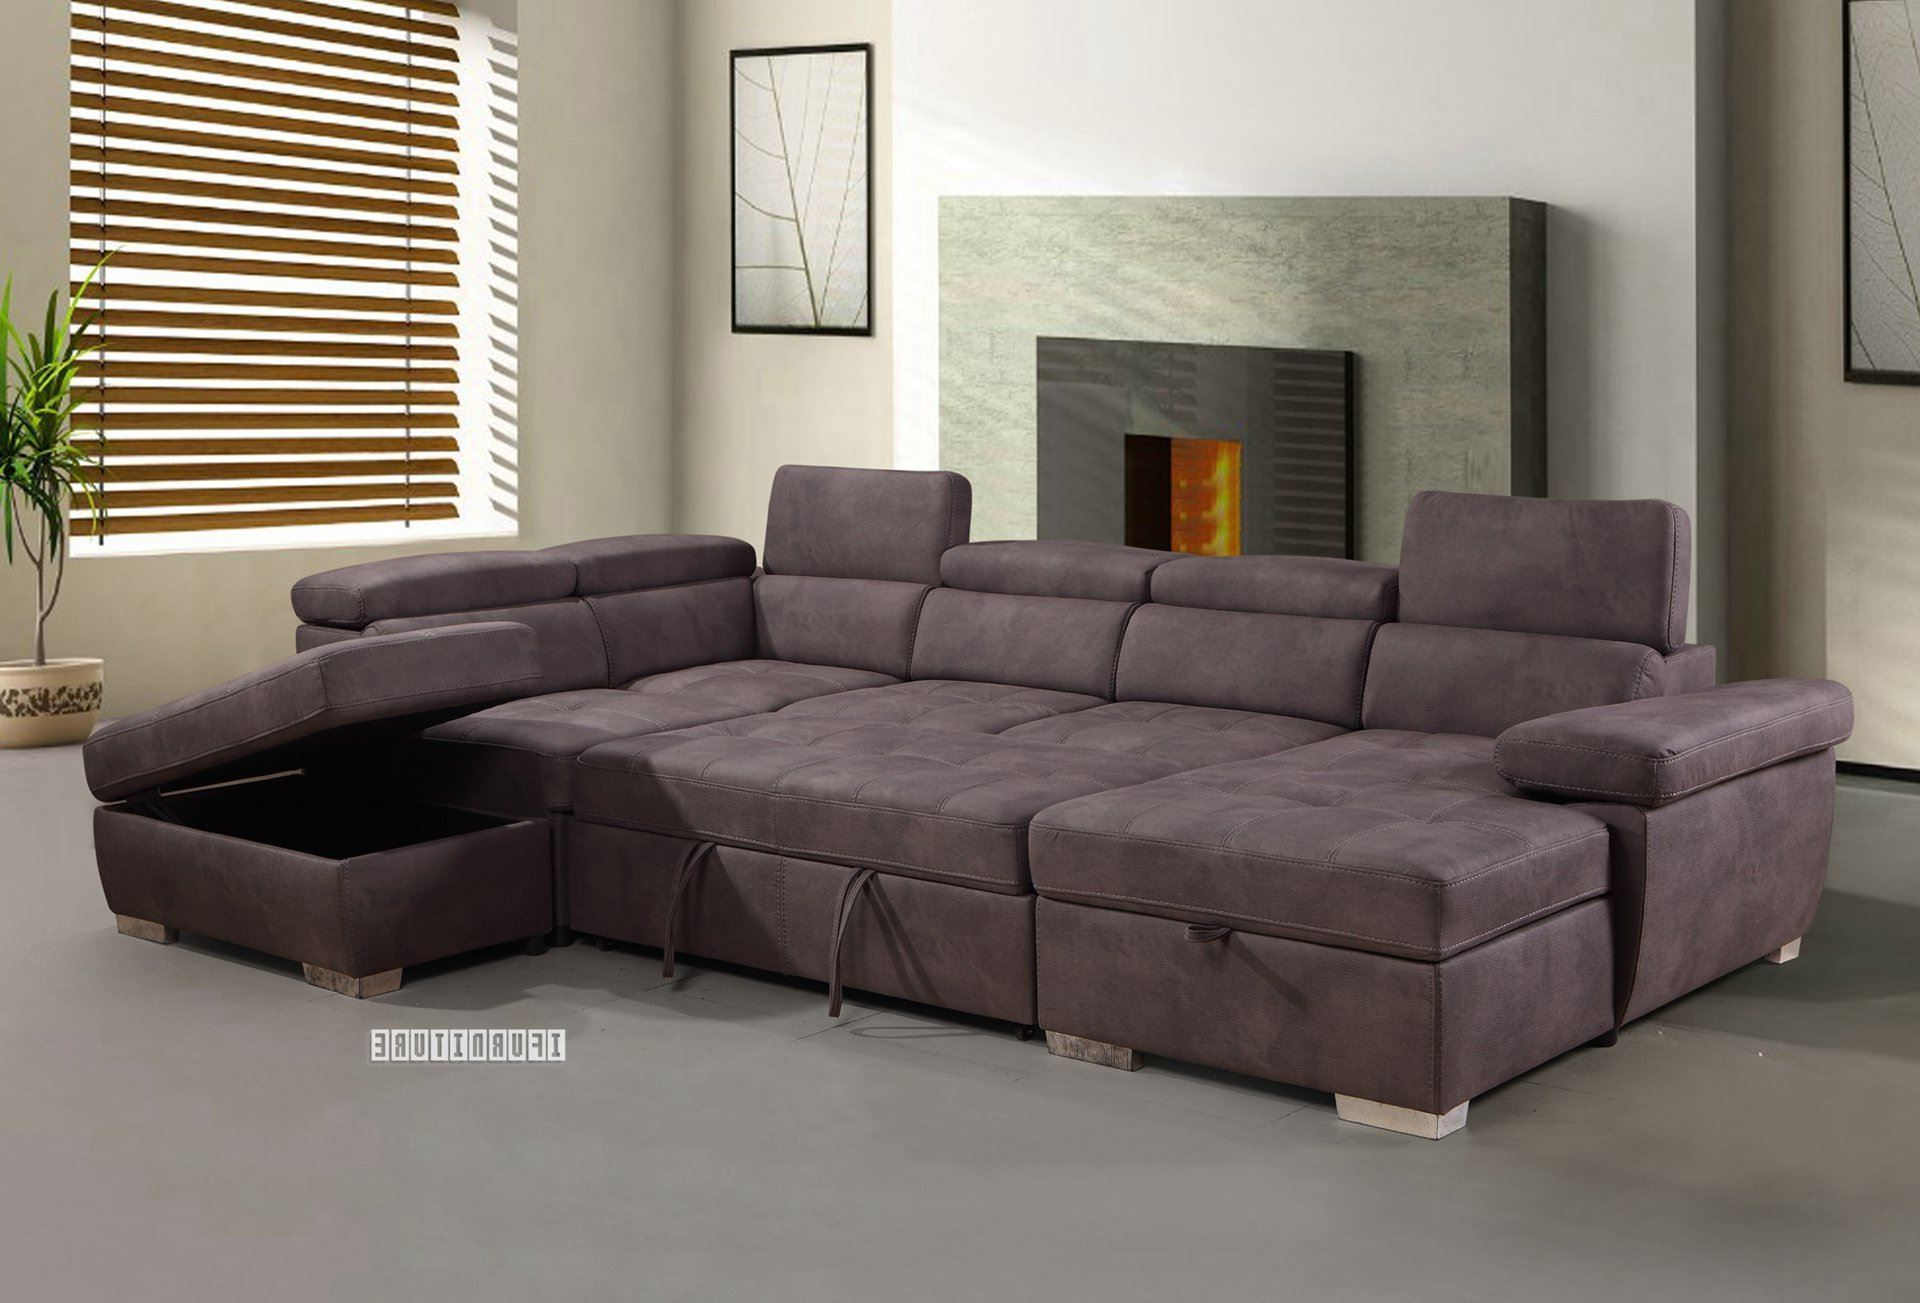 Hartford Storage Sectional Futon Sofas For Well Liked Amando Sectional Sofa/ Sofa Bed With Storage *titanium Grey (View 12 of 20)